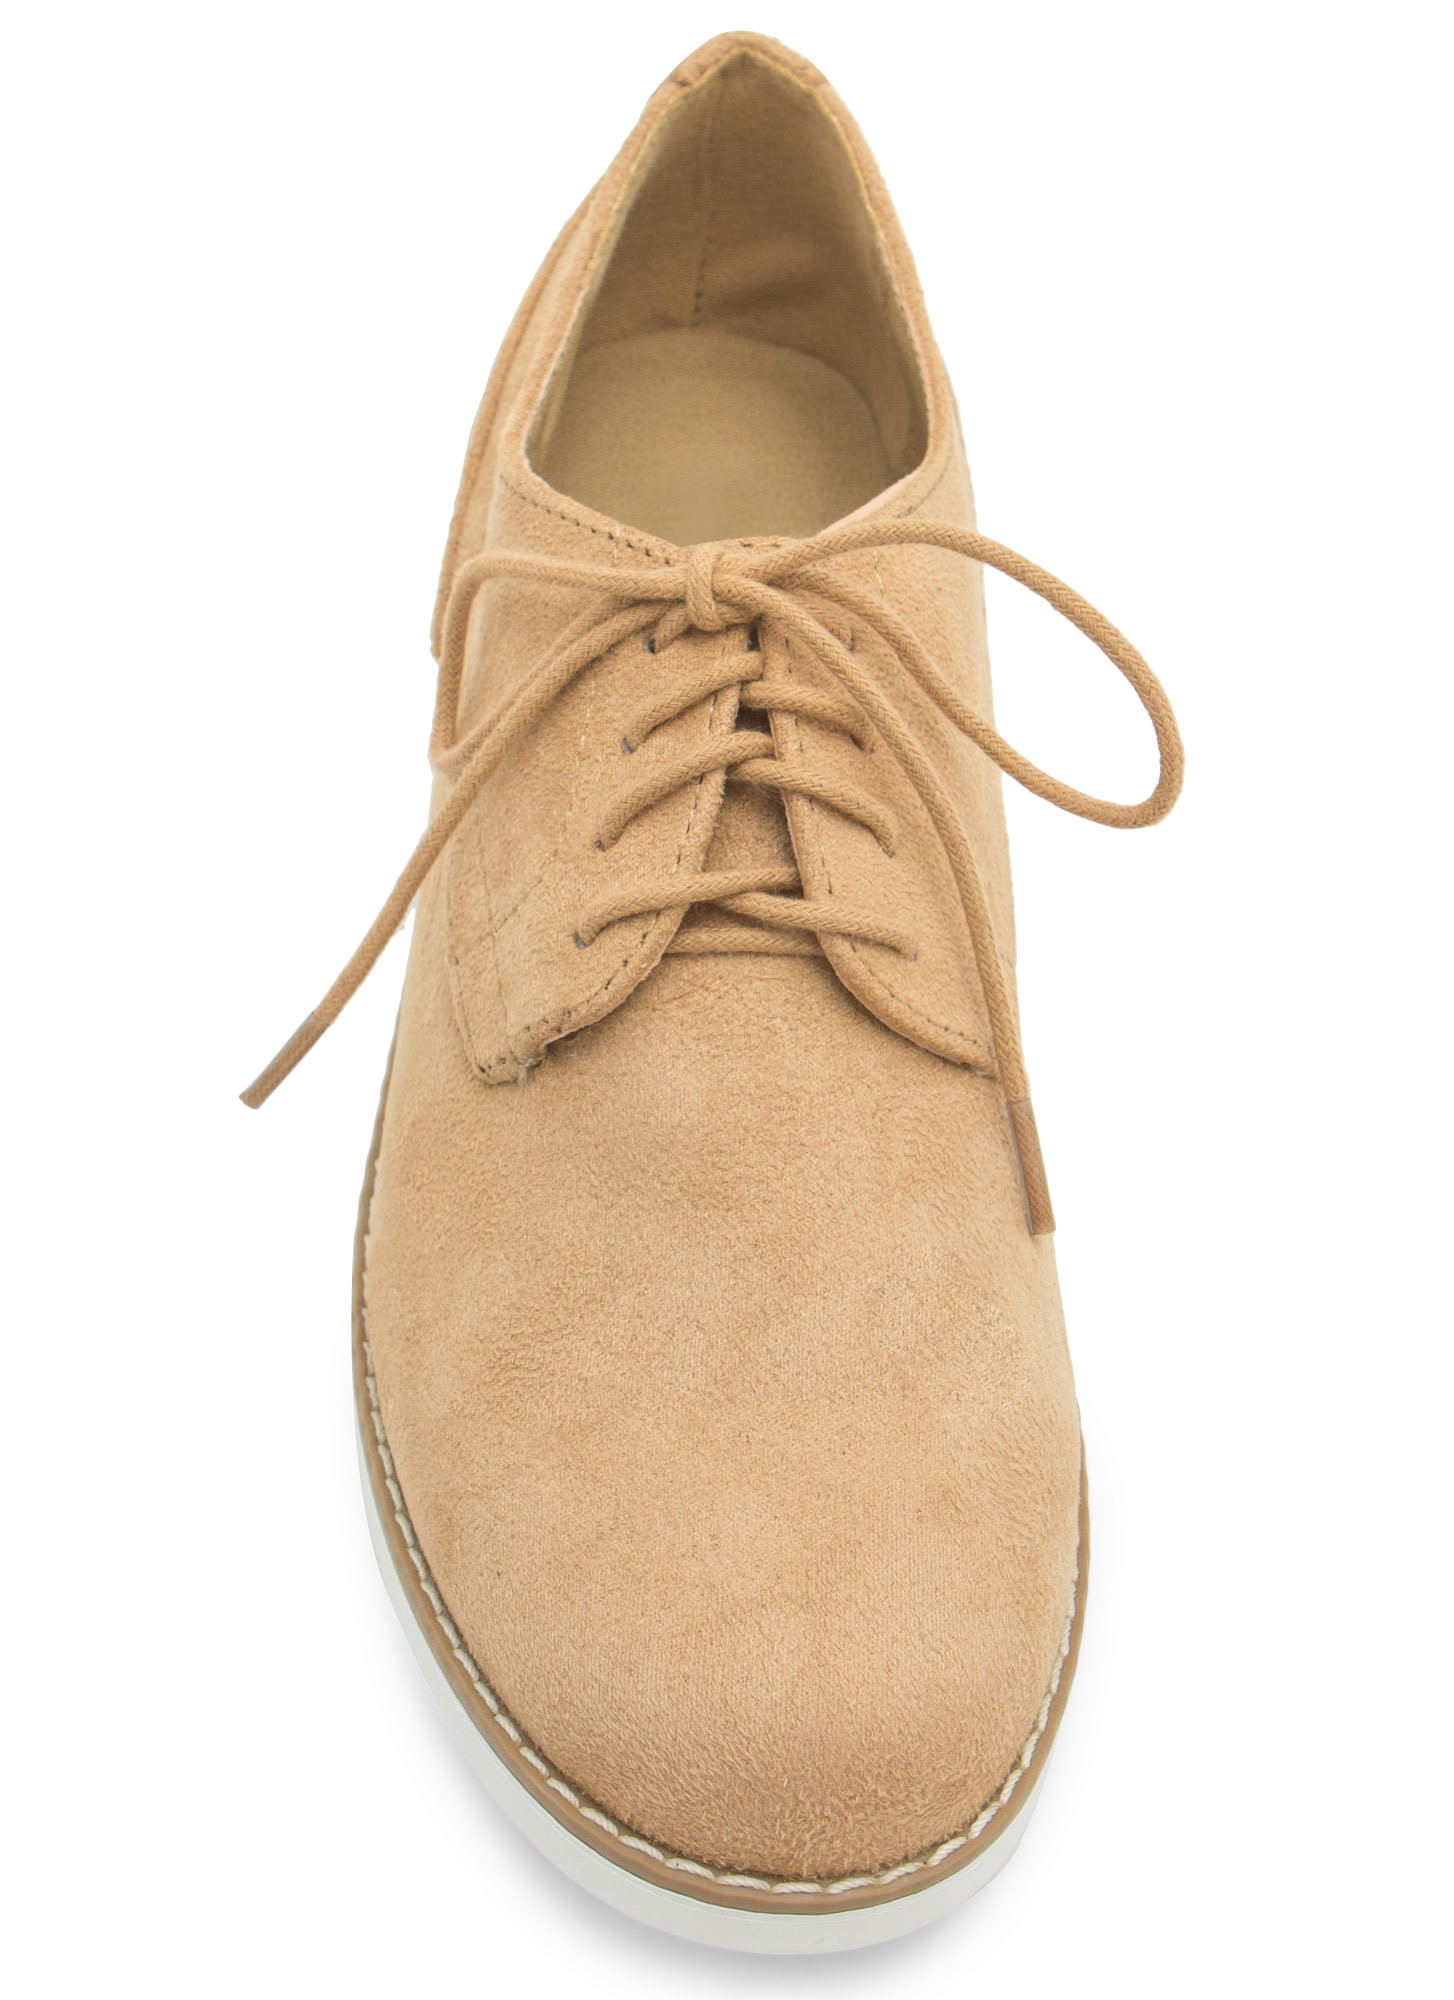 Tomboy Perfection Lace-Up Oxfords CAMEL